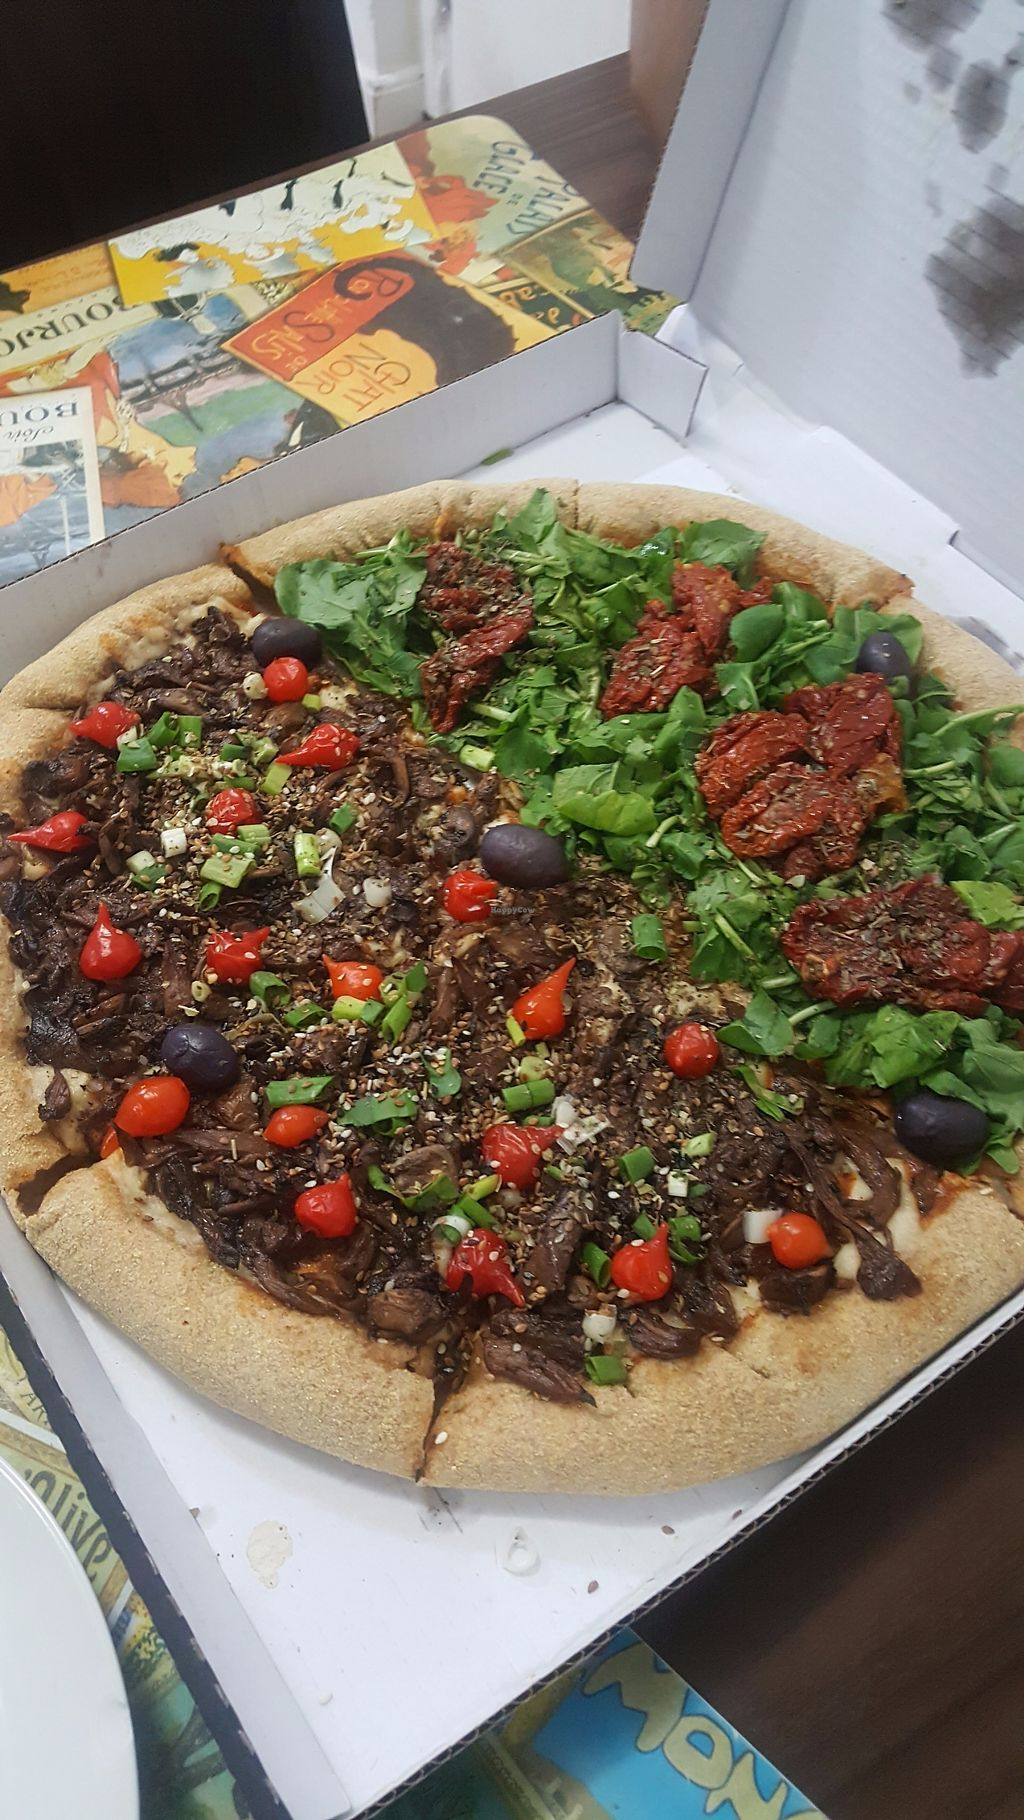 "Photo of Pop Vegan Food  by <a href=""/members/profile/sarahssoares"">sarahssoares</a> <br/>Vegan pizza <br/> September 19, 2017  - <a href='/contact/abuse/image/96385/306046'>Report</a>"